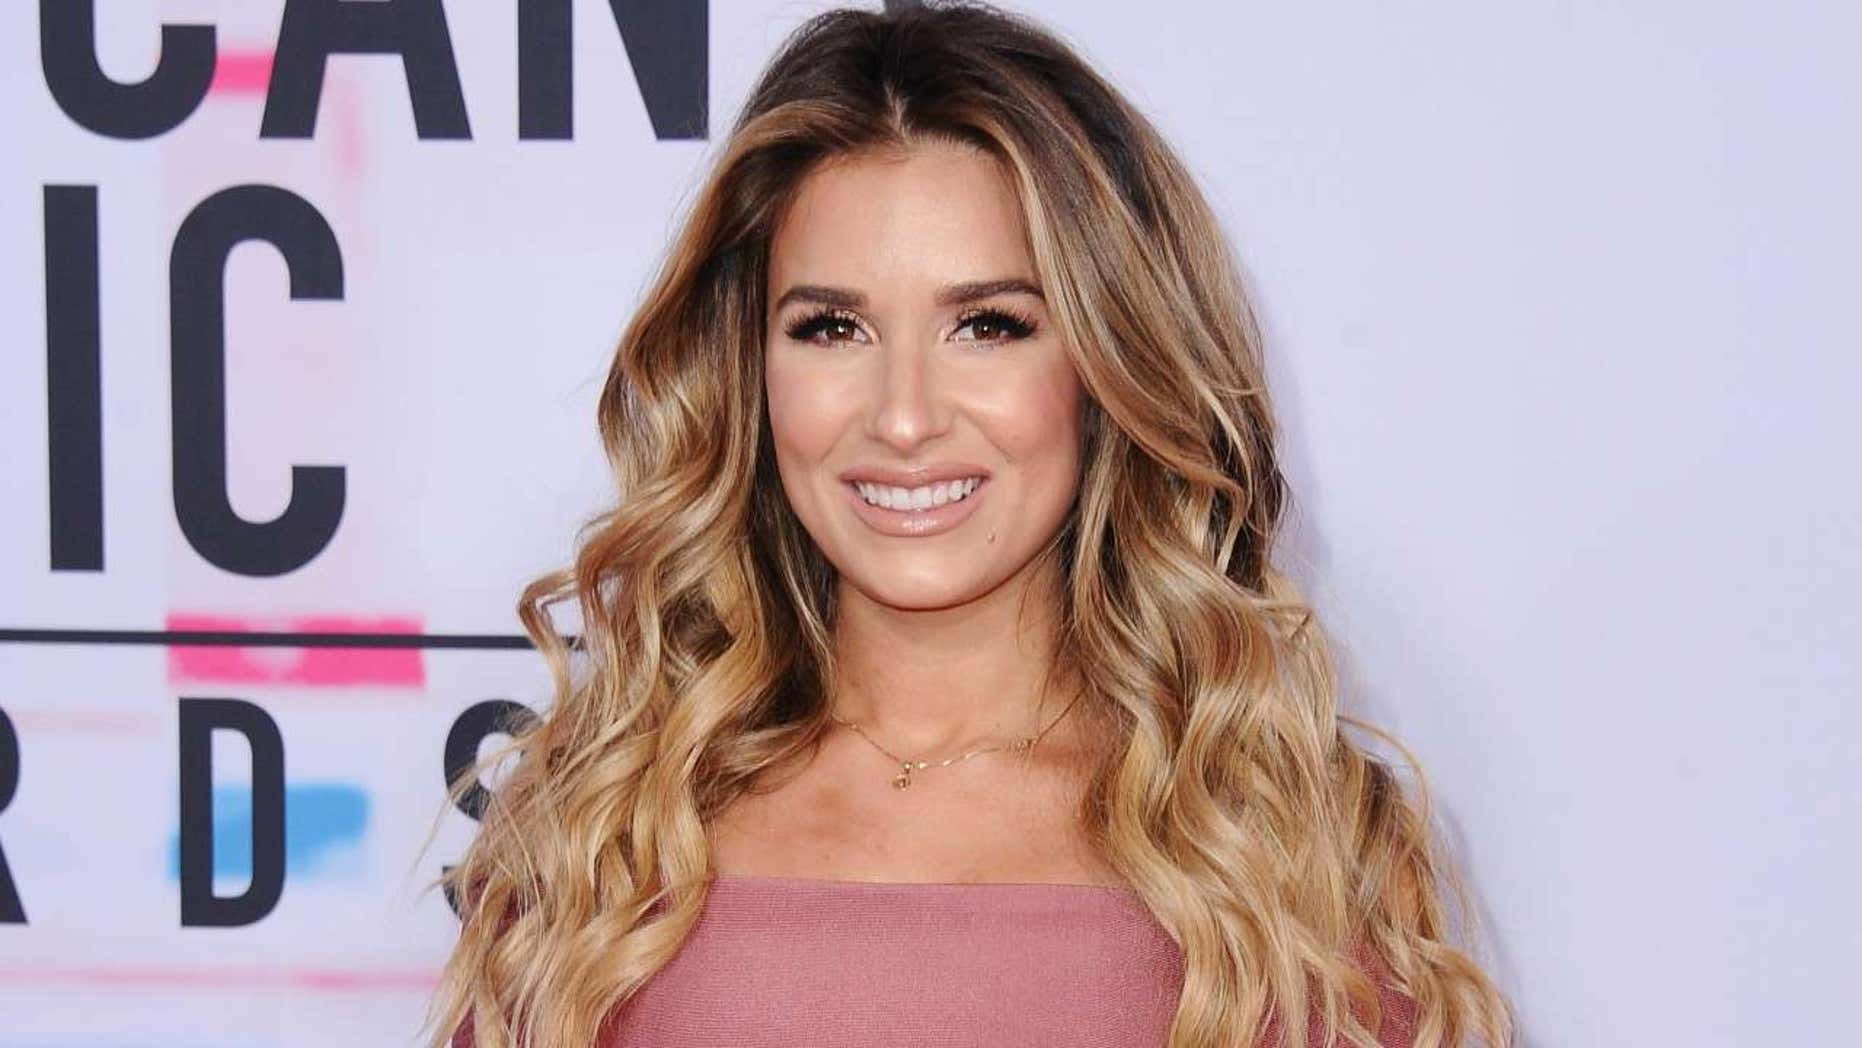 Jessie James Decker opens up about her post-pregnancy weight loss in an Instagram post on Tuesday.